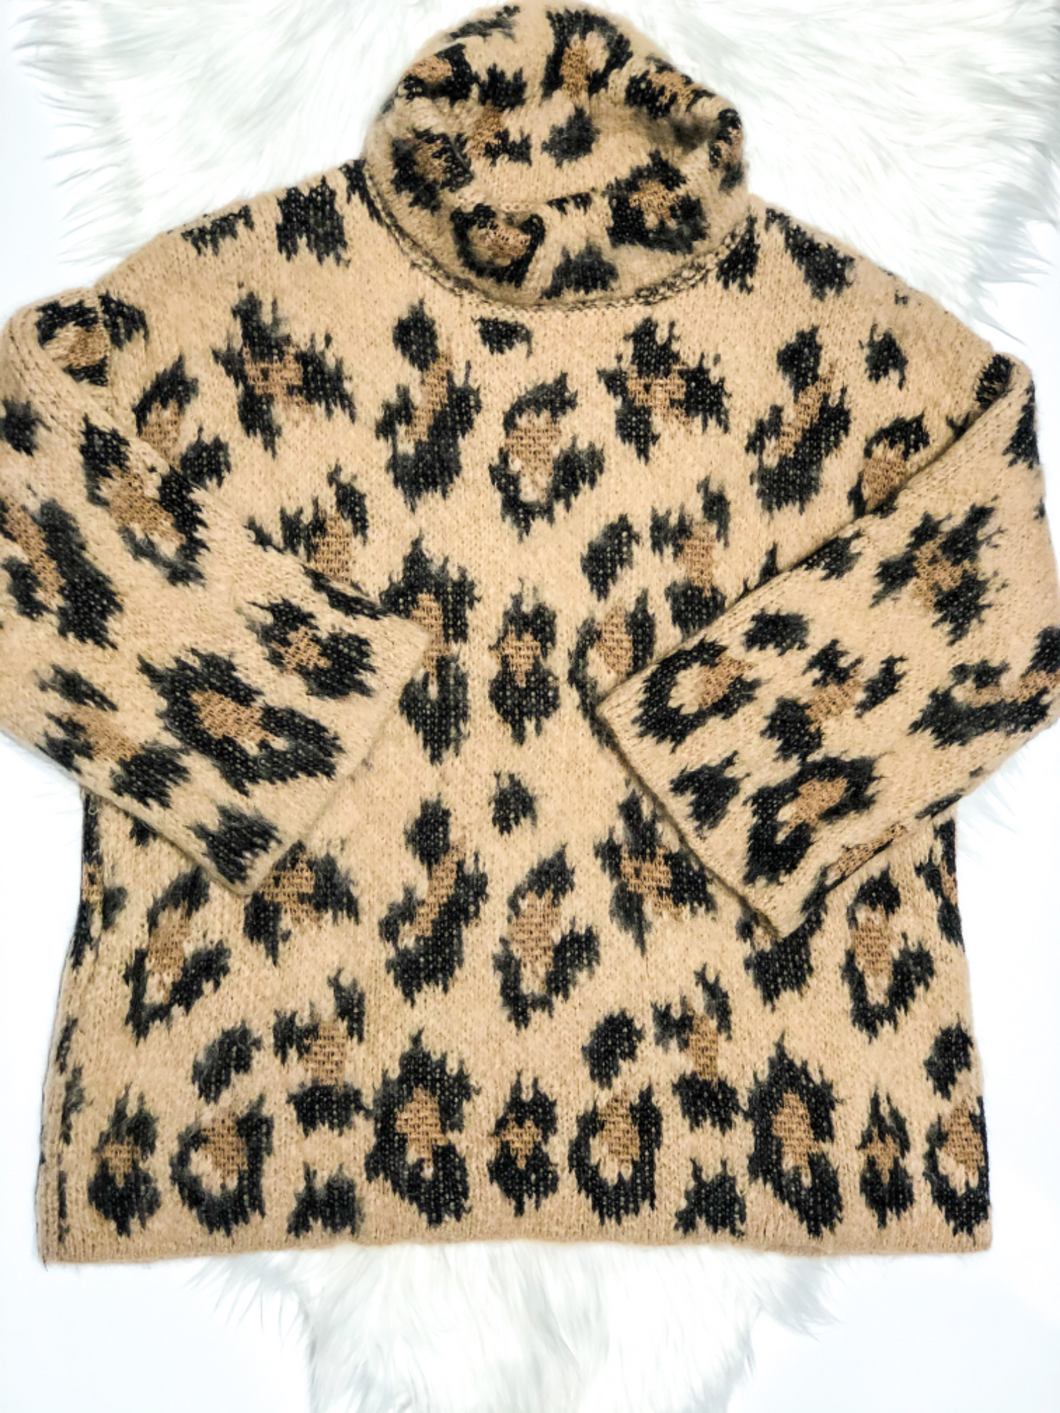 Kate Spade New York Sweater Size S (4 6)